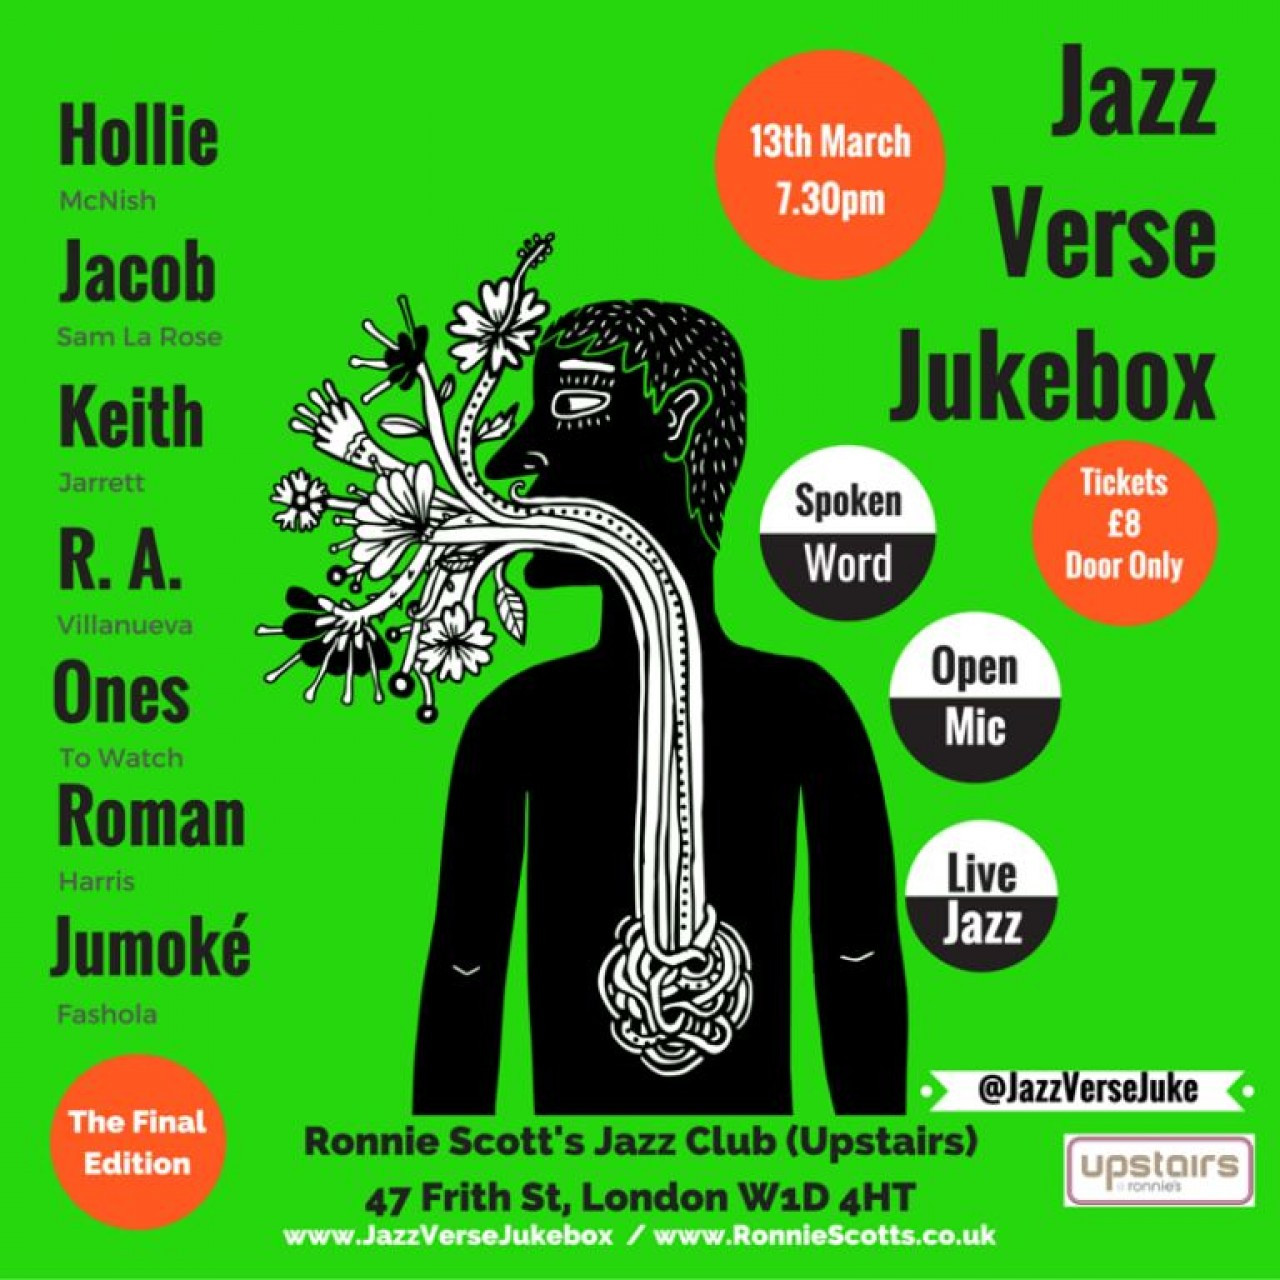 Jazz_Verse_Jukebox_flyer_V4_March_2016.jpg